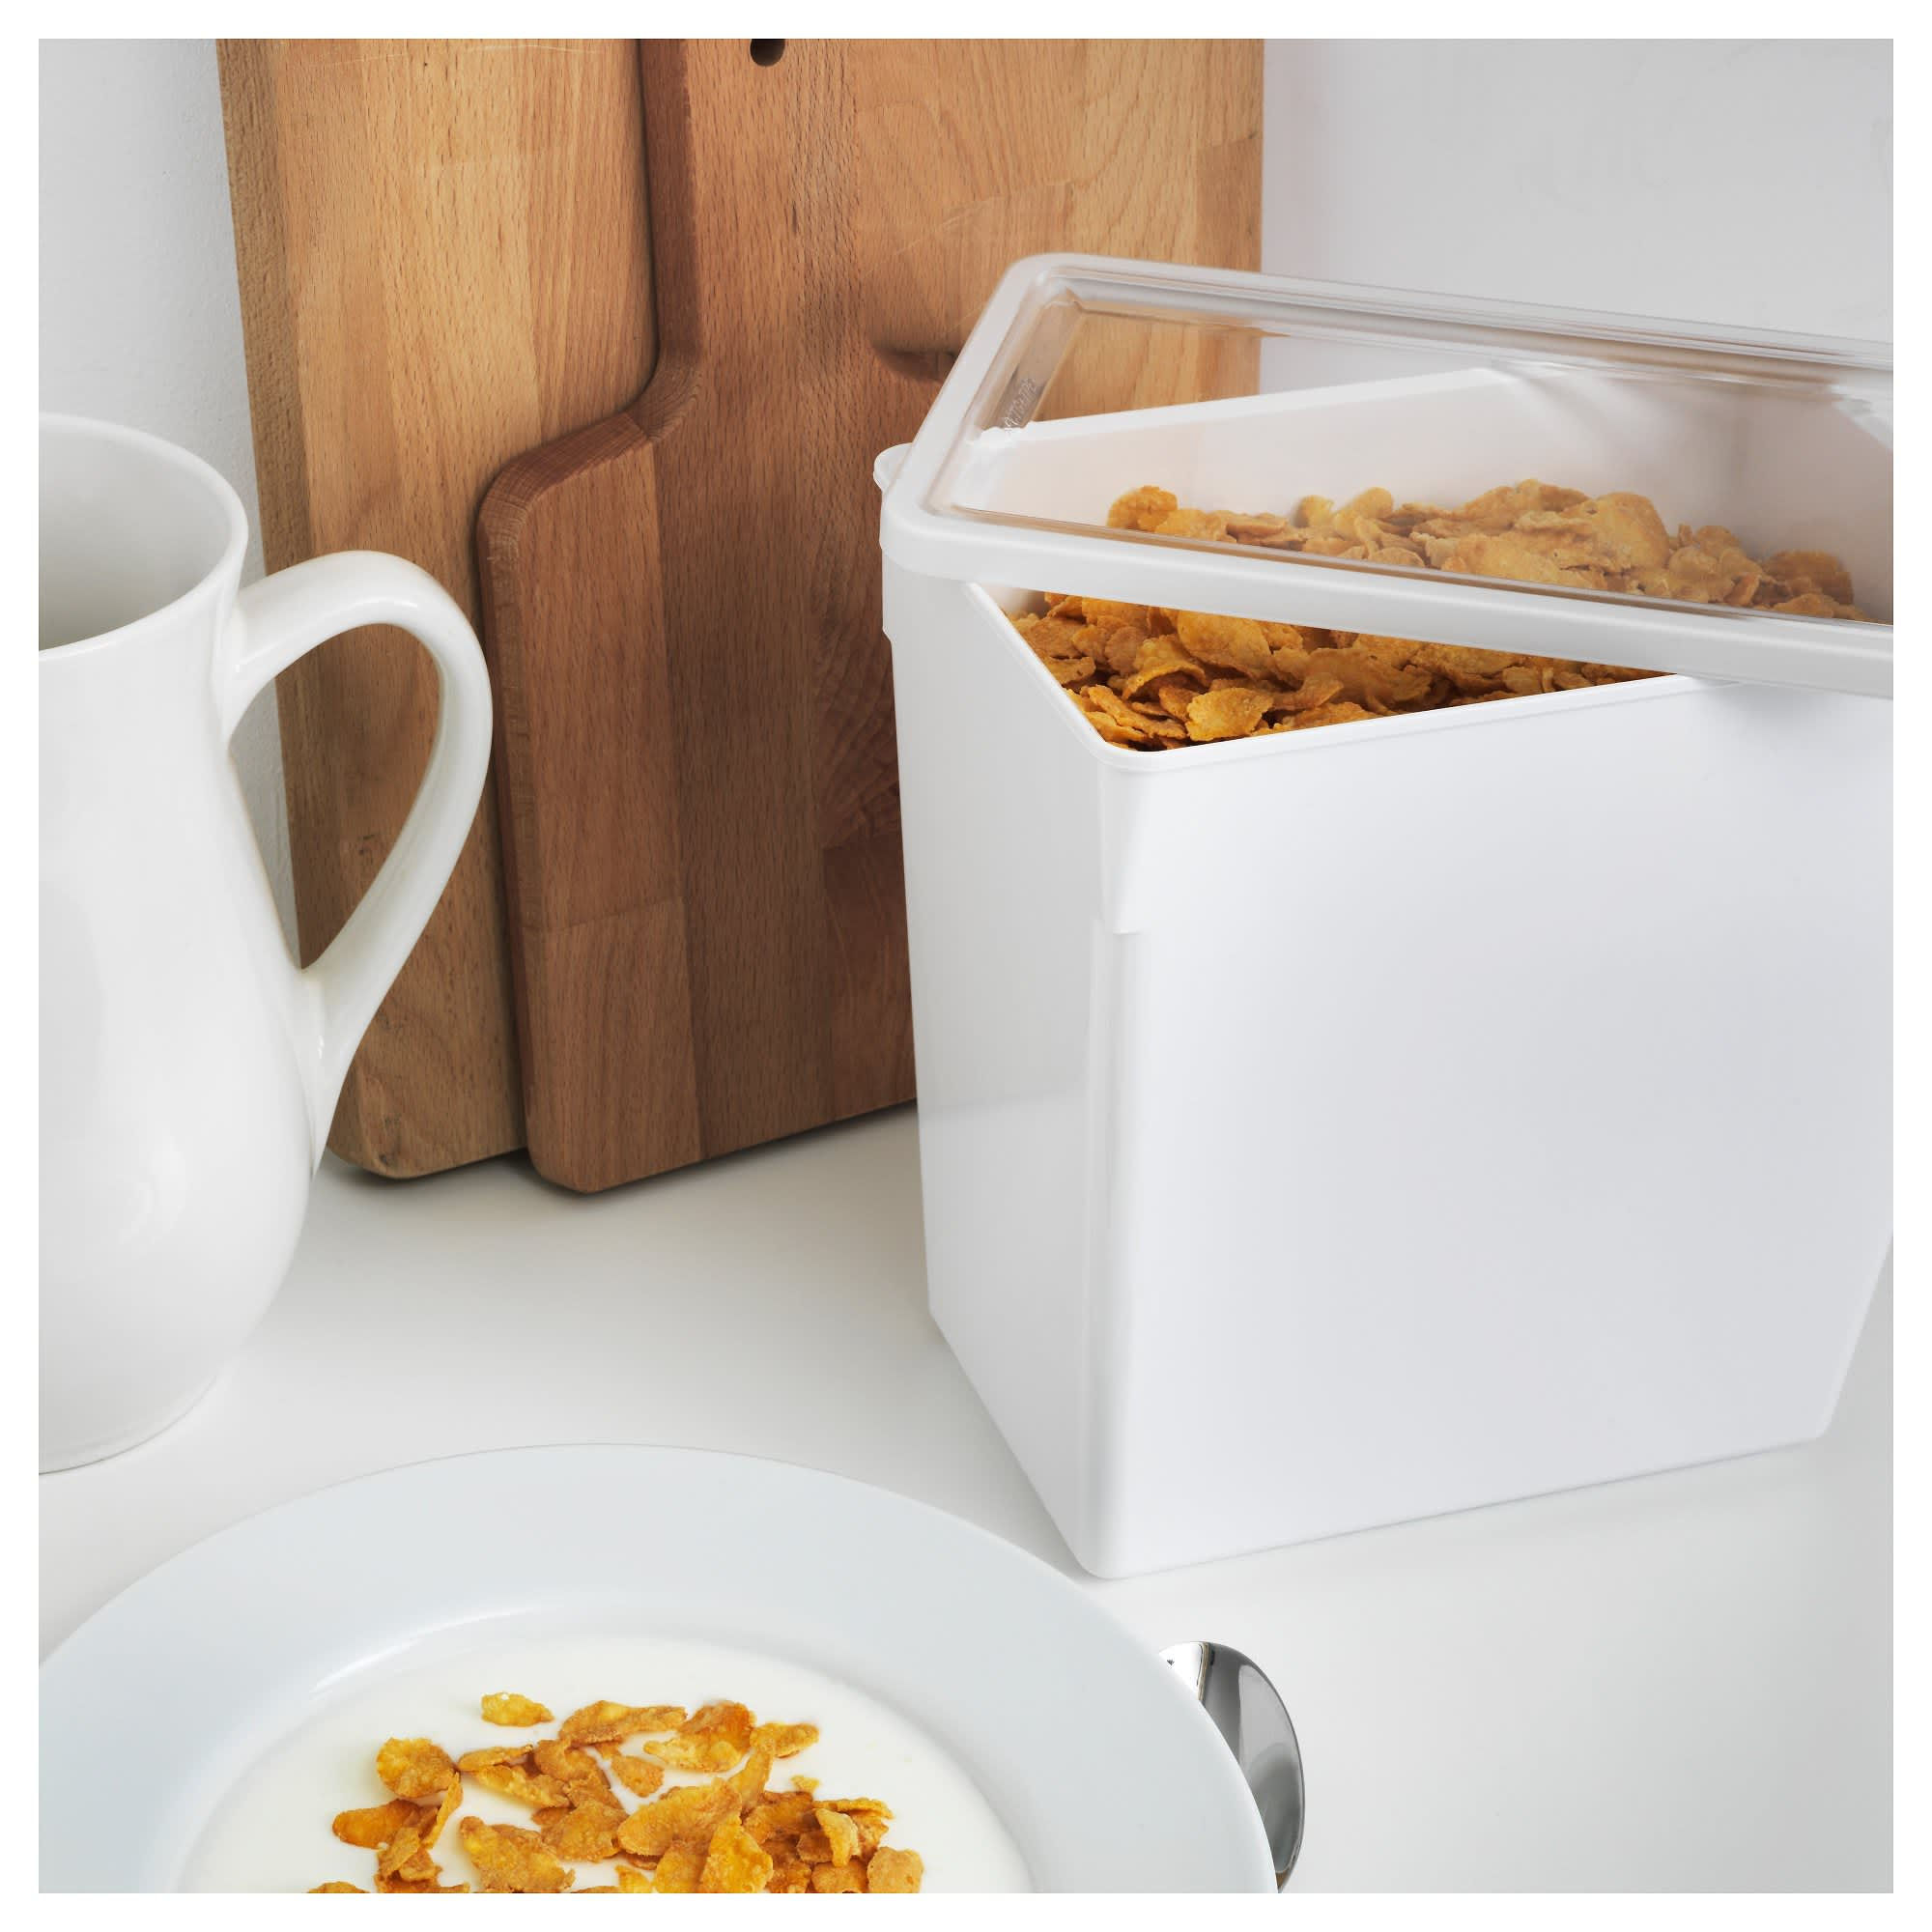 8 Great Storage Containers for Baking Essentials: gallery image 7